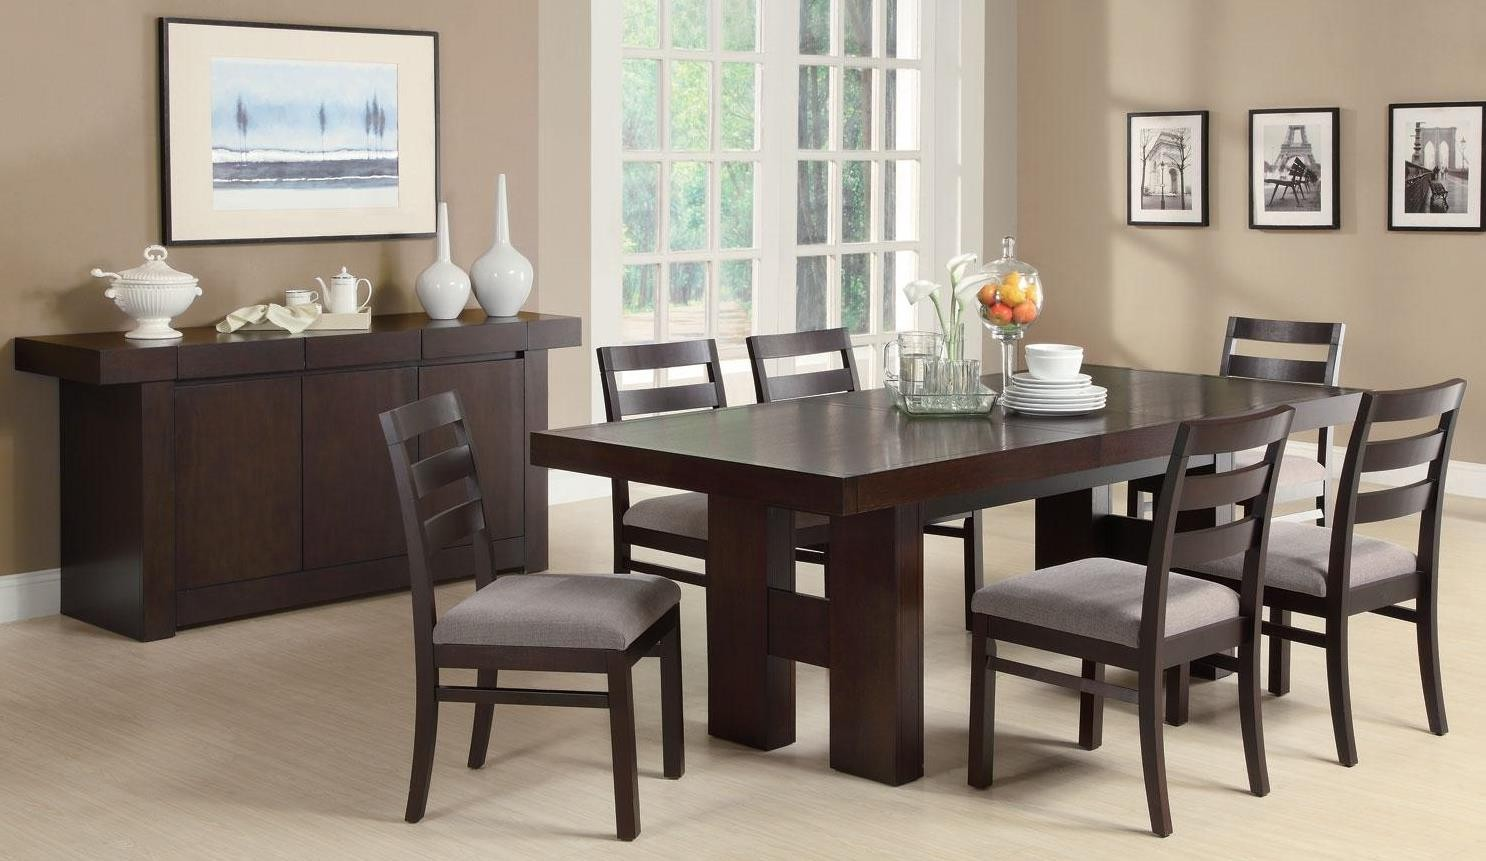 Dabny cappuccino rectangular extendable dining room set from coaster coleman furniture - Extending dining room sets ...